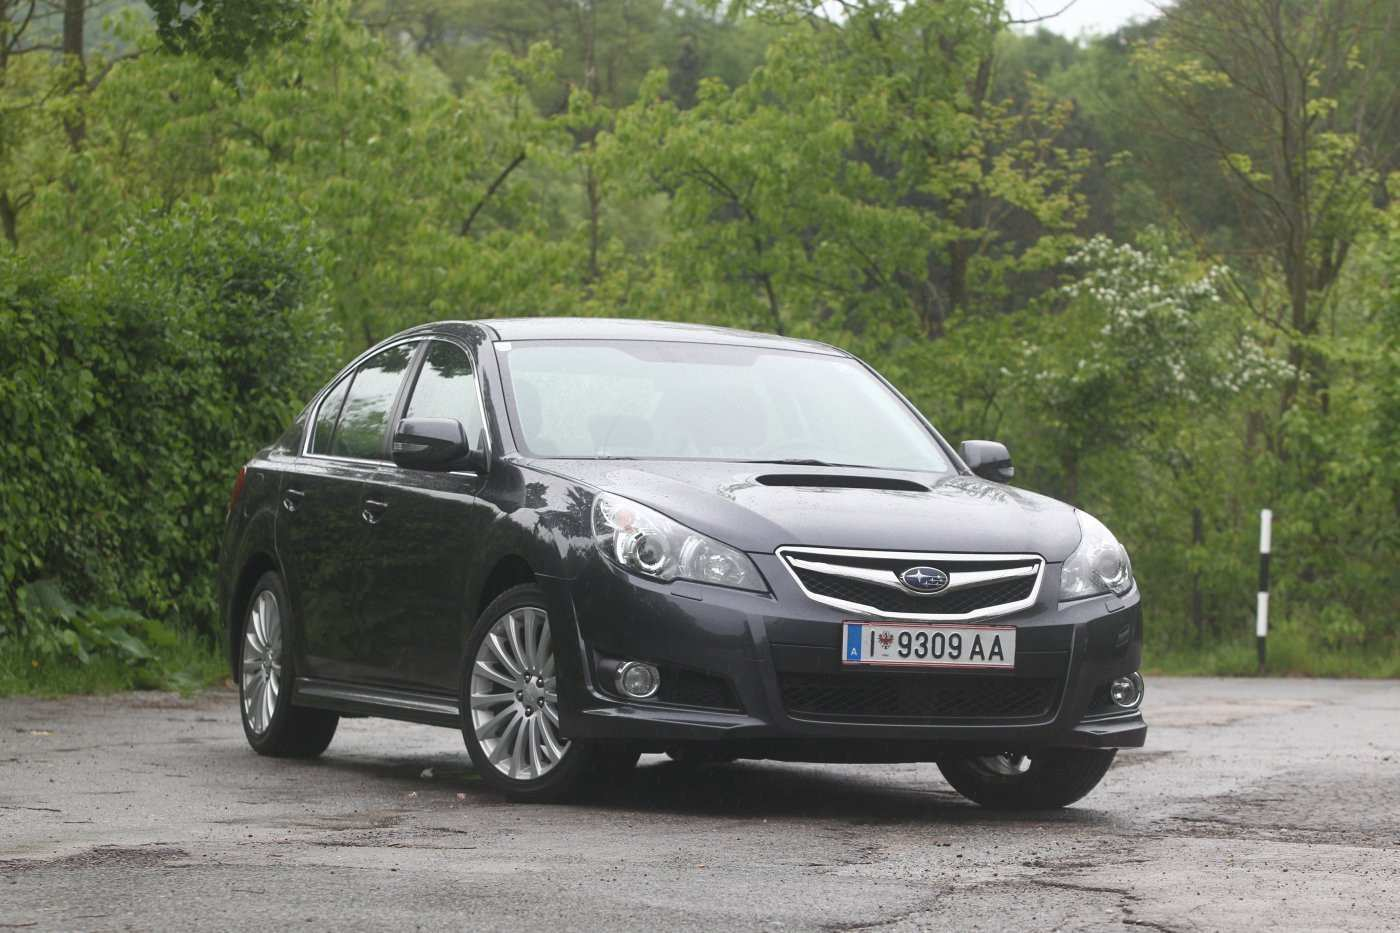 55 New Subaru Xv Turbo 2019 Review And Release Date